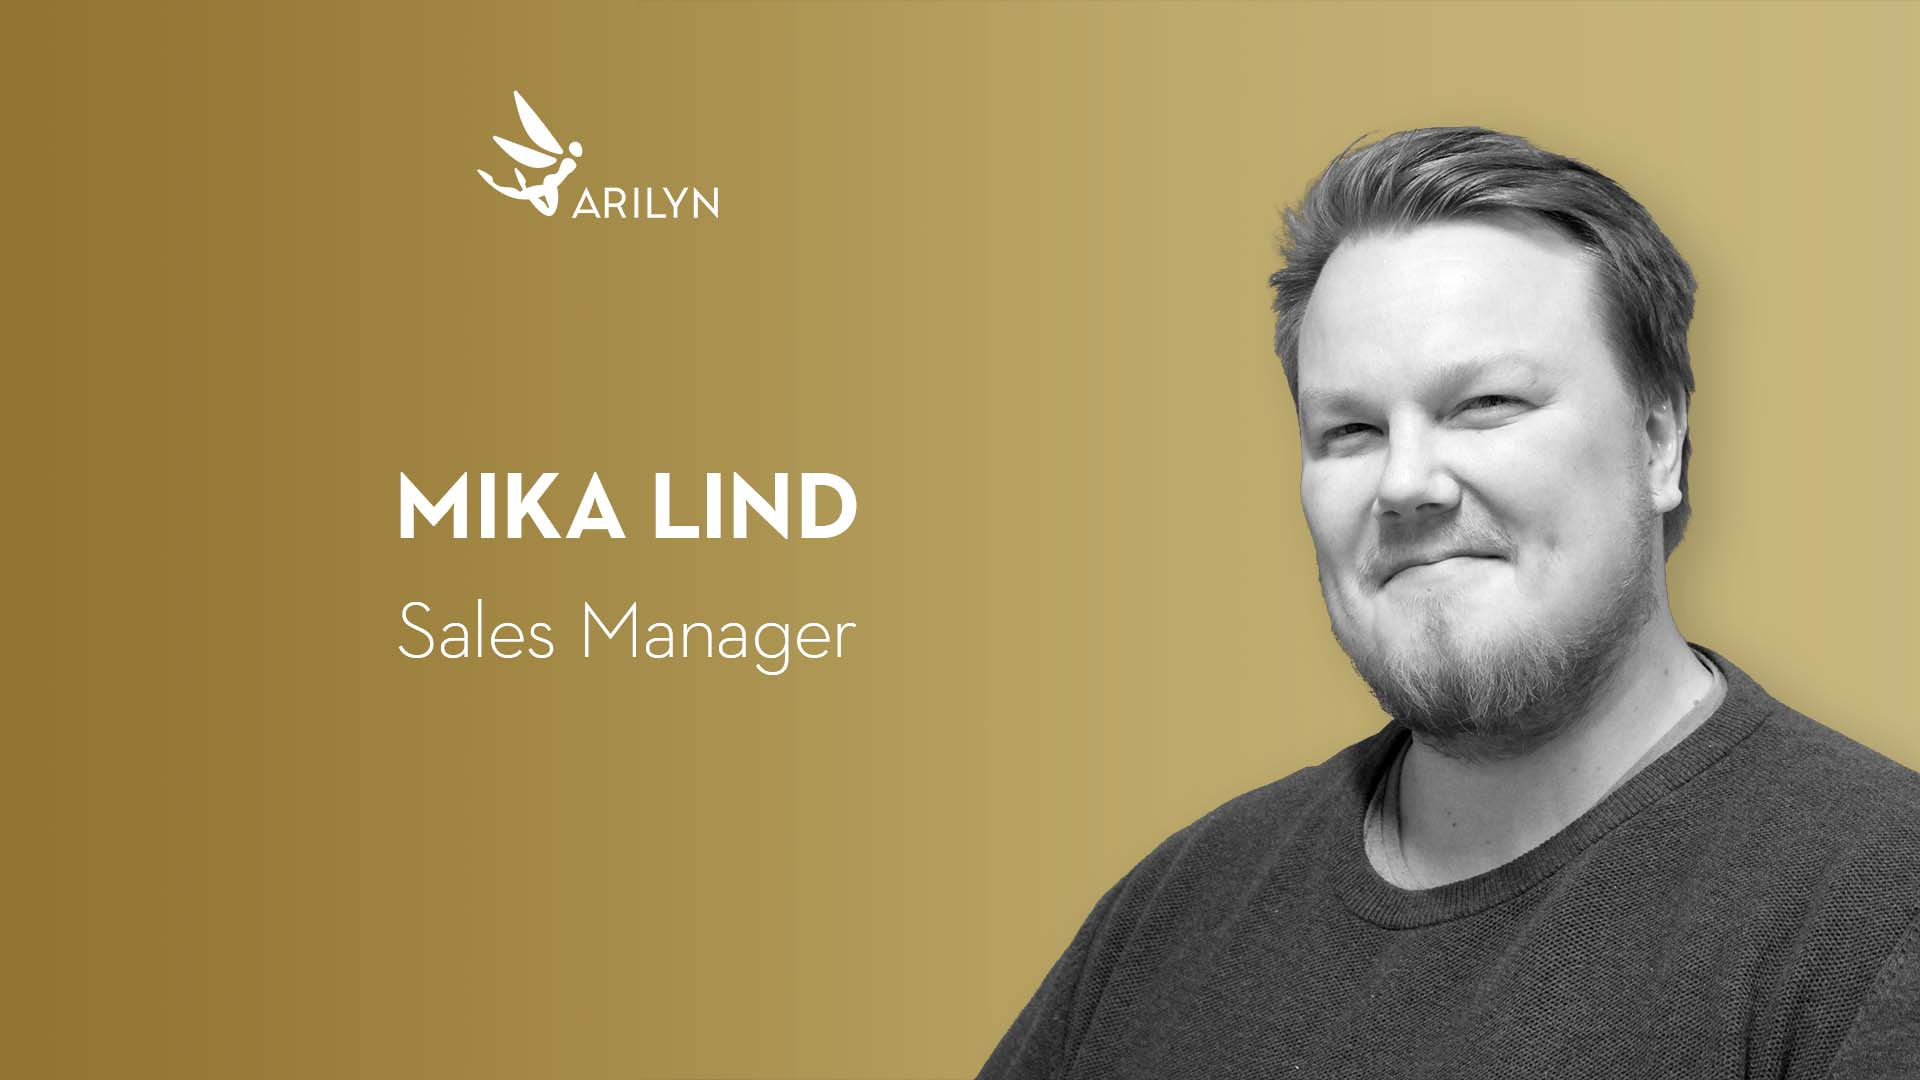 Get to know Arilyn– Mika, Sales